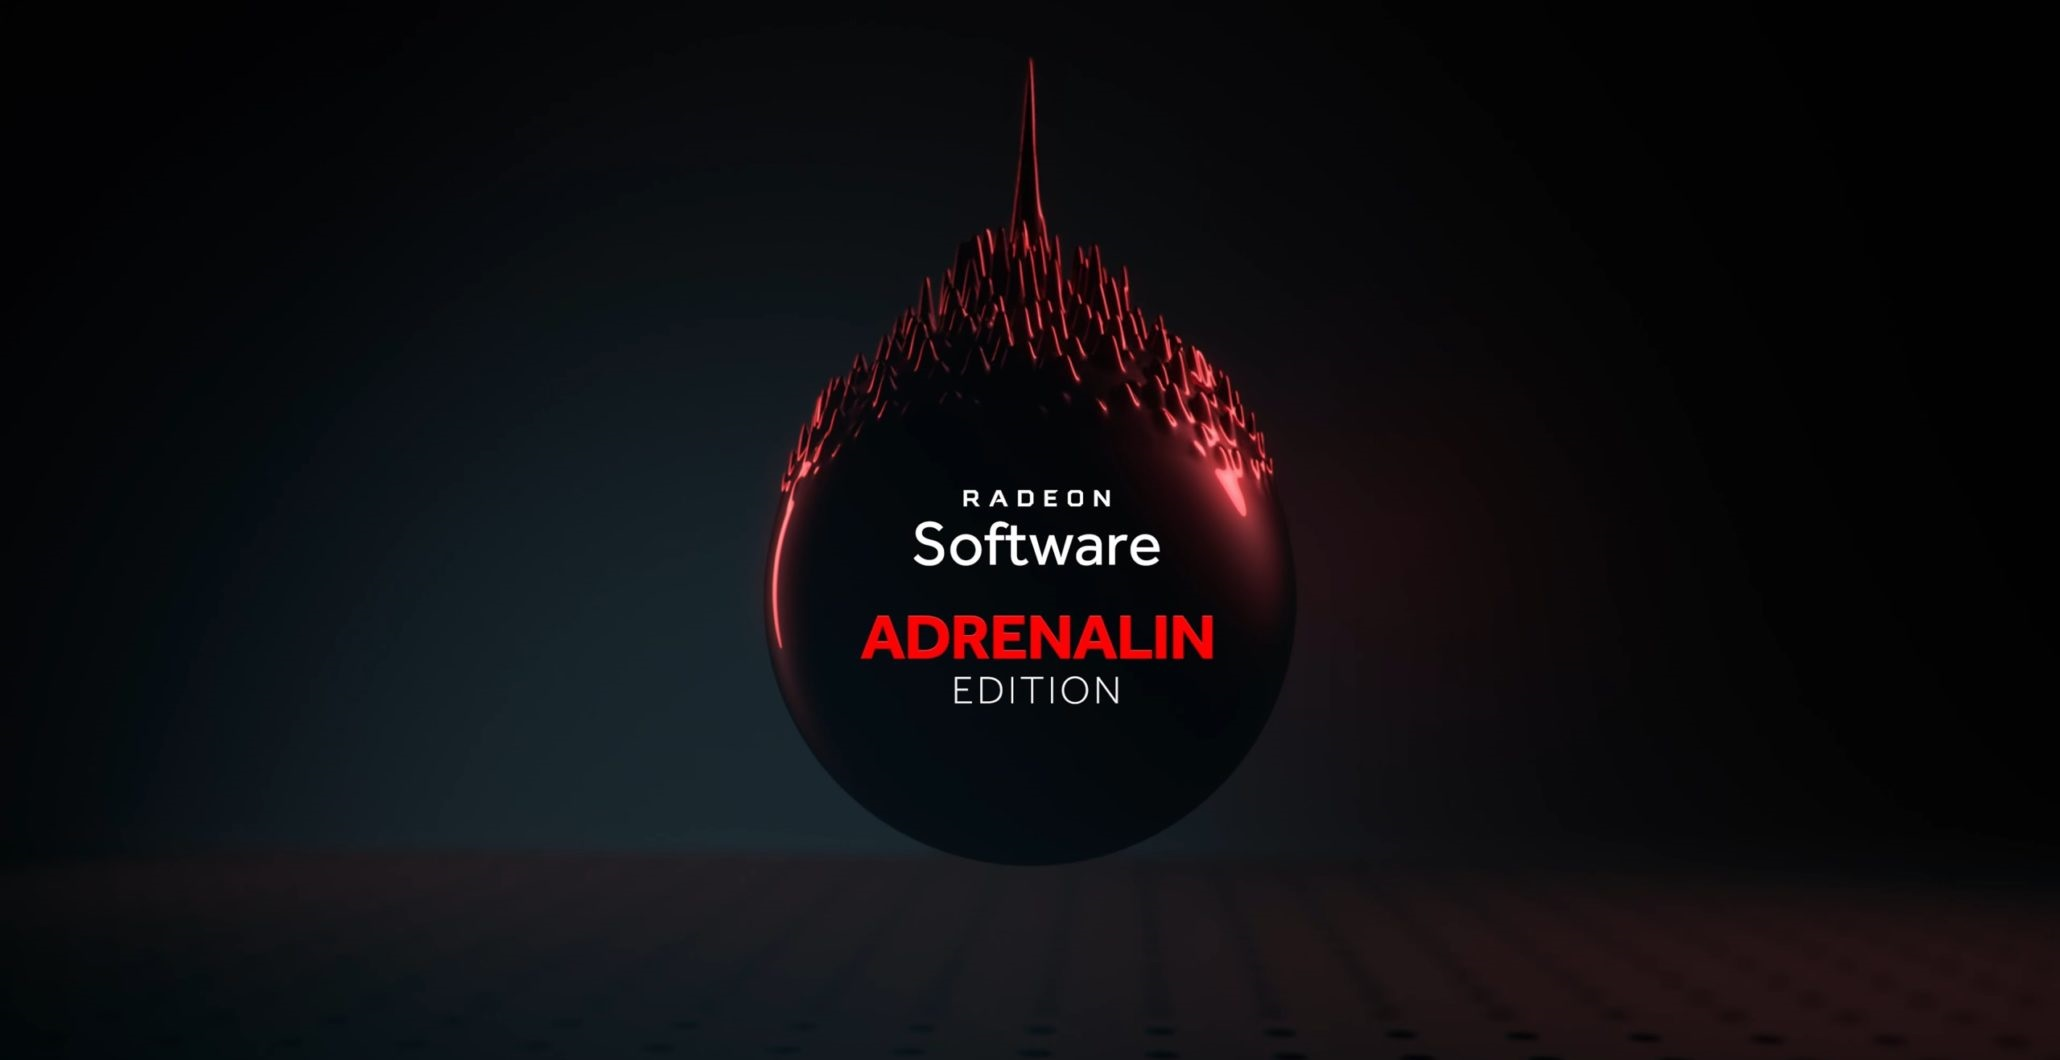 AMD Radeon Software Adrenalin Edition Graphics Version 18 4 1 Is Out